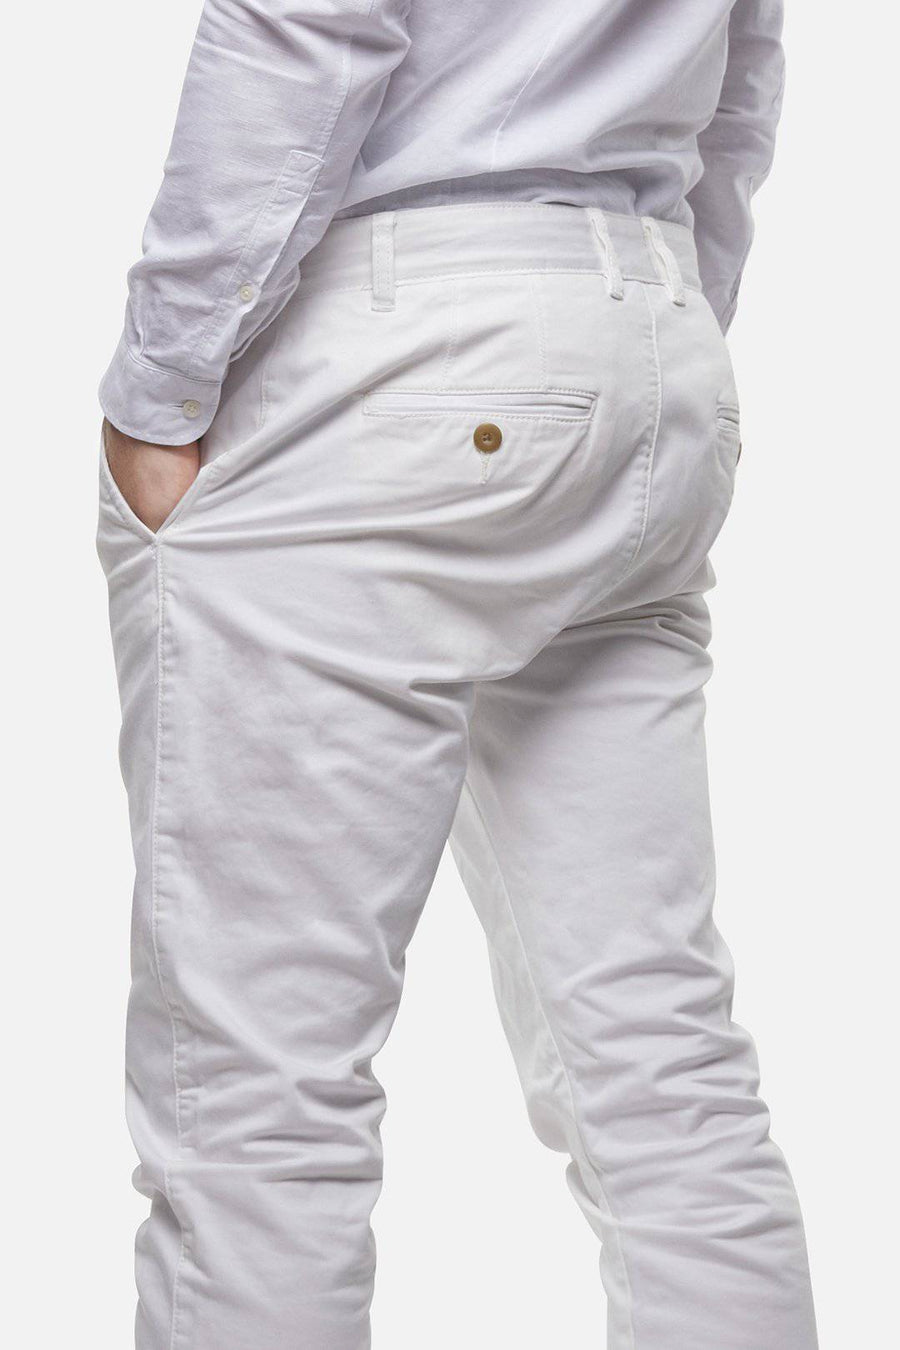 Antique White Regular Cuba Chino - South of London